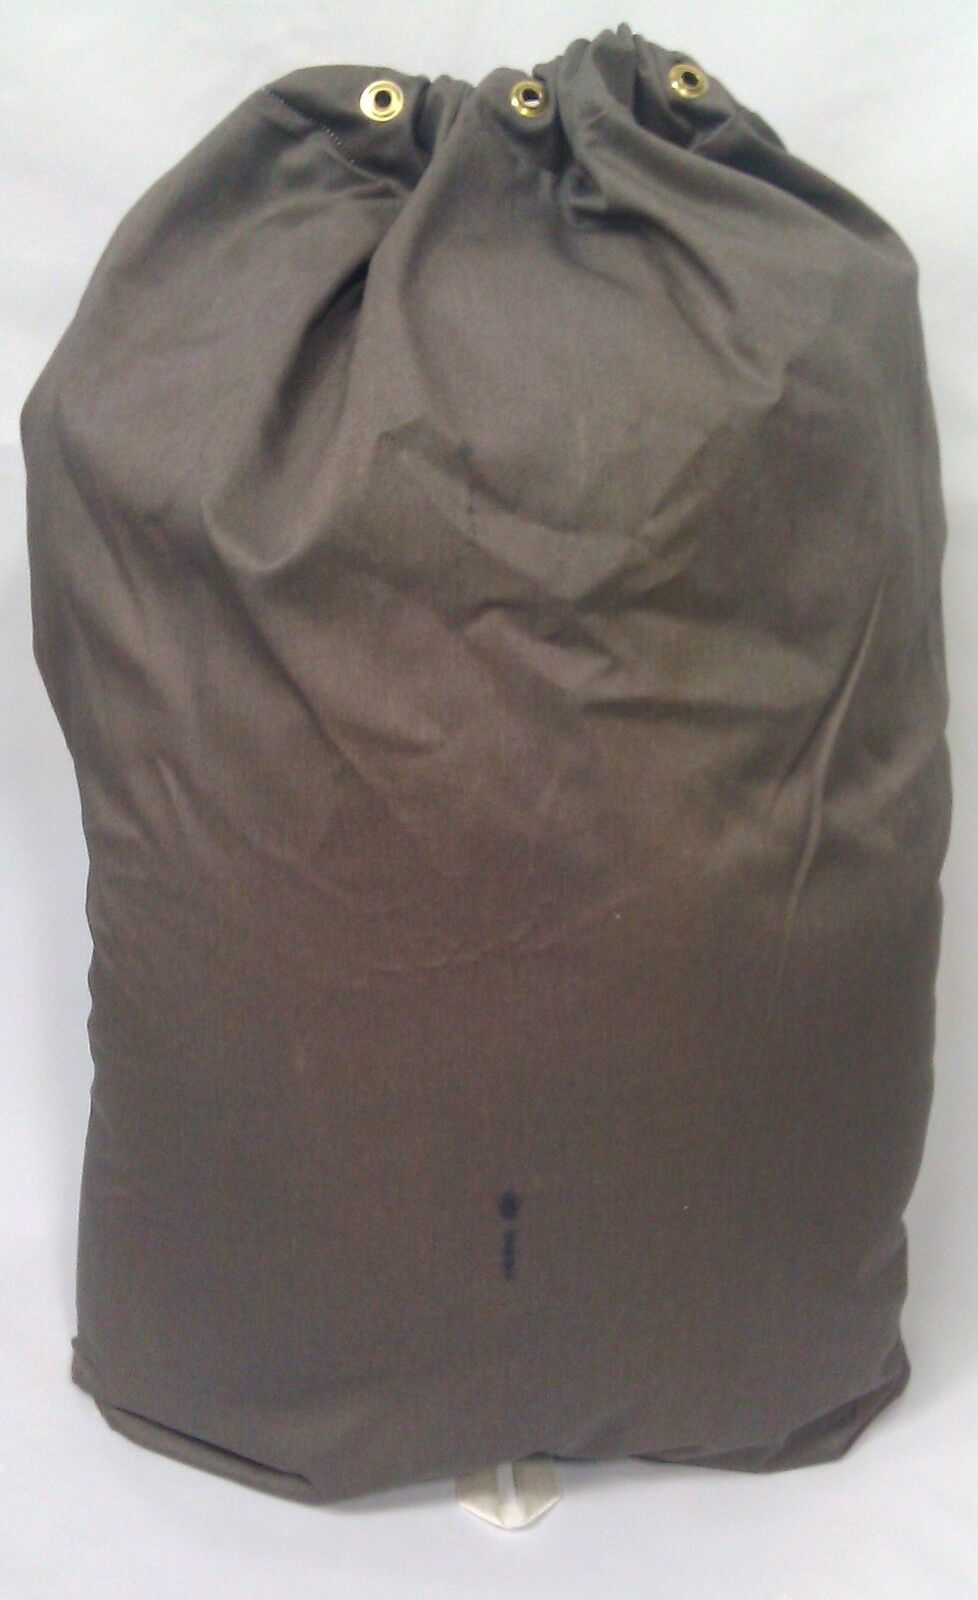 Super Heavy Duty 30 X 40 Canvas Laundry Bag With 6 Brass Grommets With  LD94